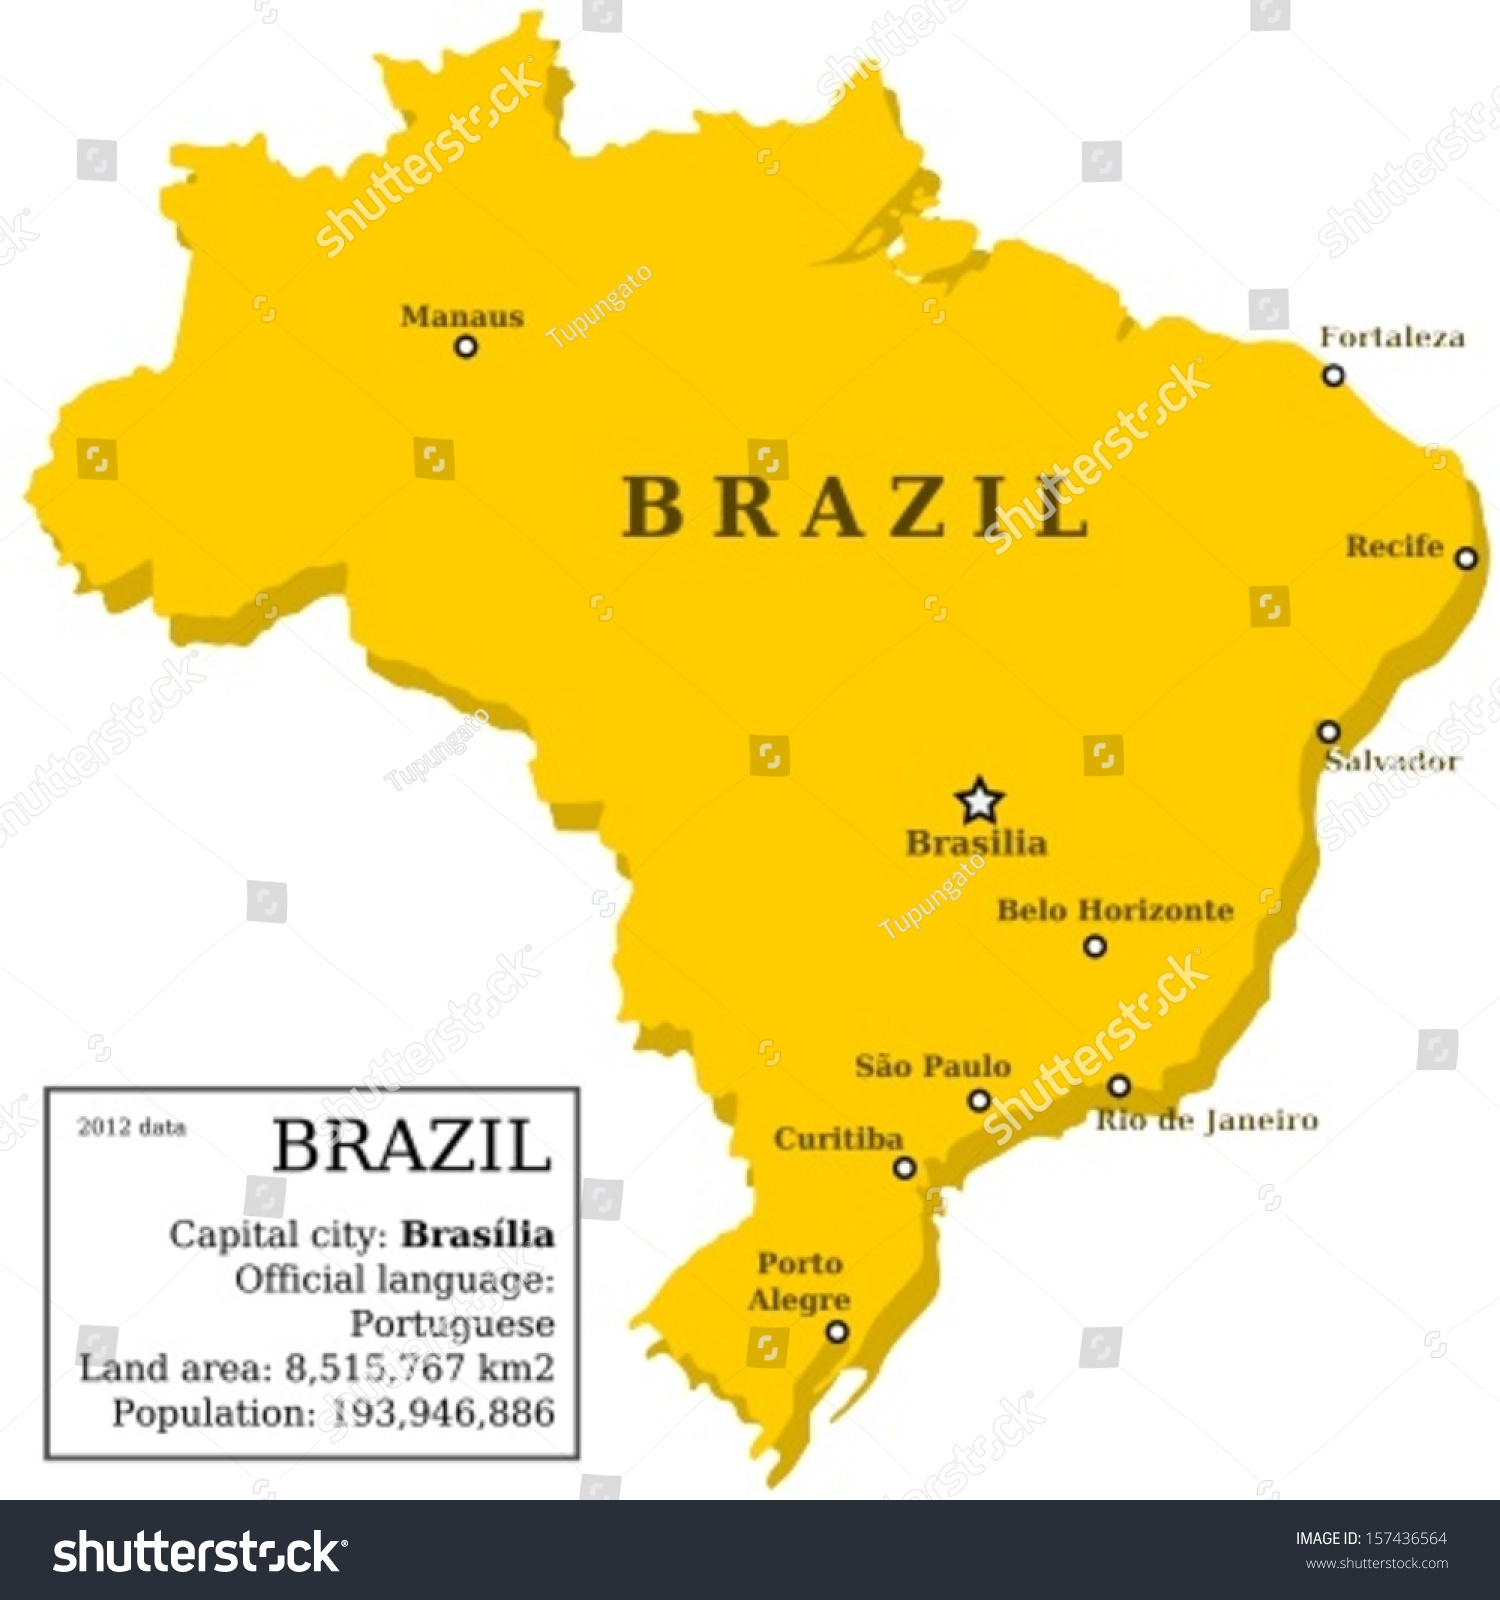 Map Brazil Country Outline Information Box Stock Vector - Map of brazil